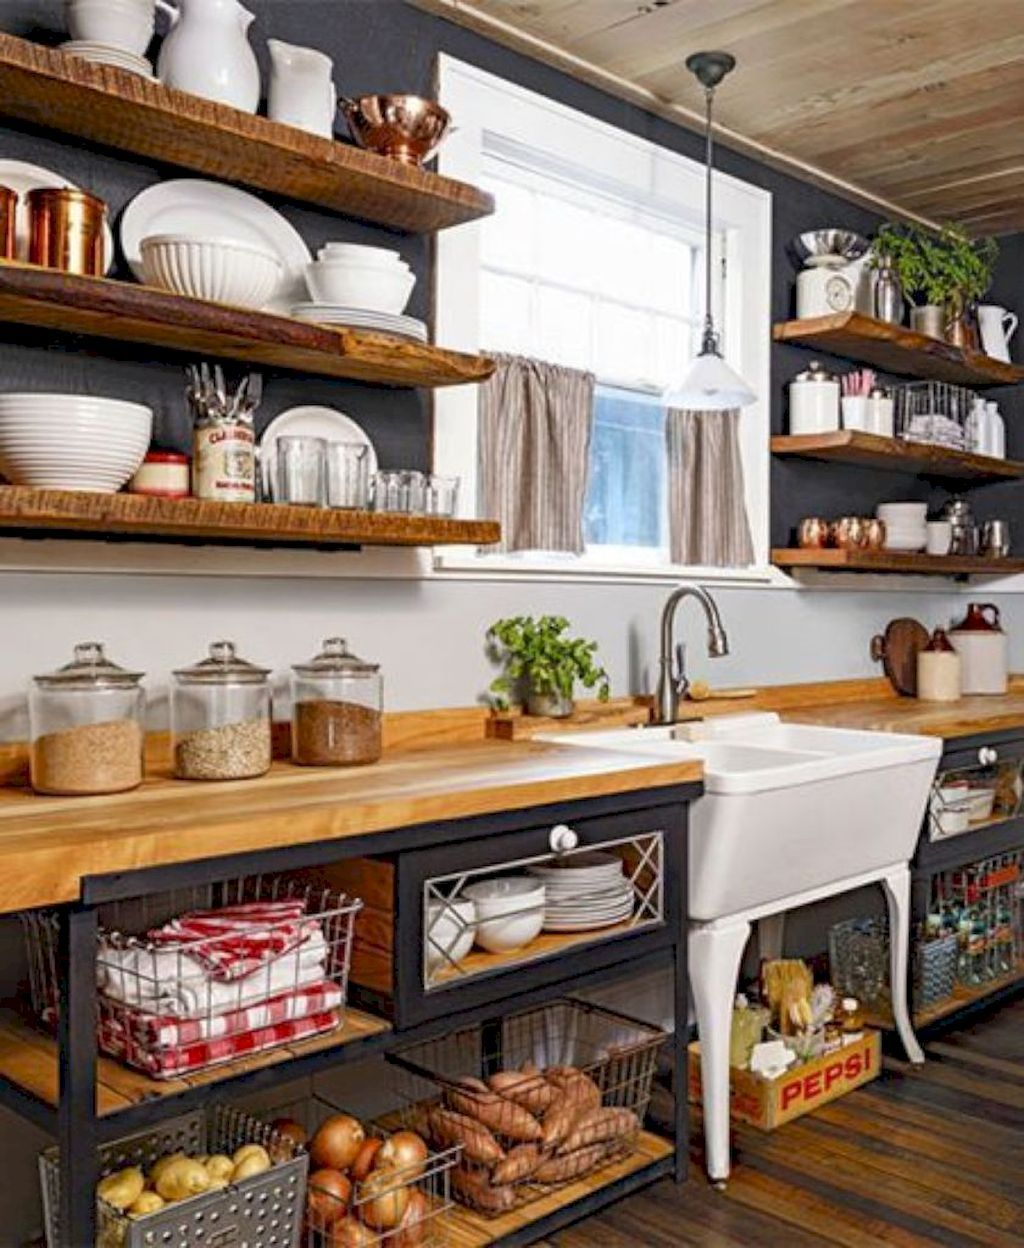 Rustic Style Really Brings The Excitement To The Room It Works Great With Farmhouse And Country S Rustic Kitchen Cabinets Open Kitchen Cabinets Trendy Kitchen